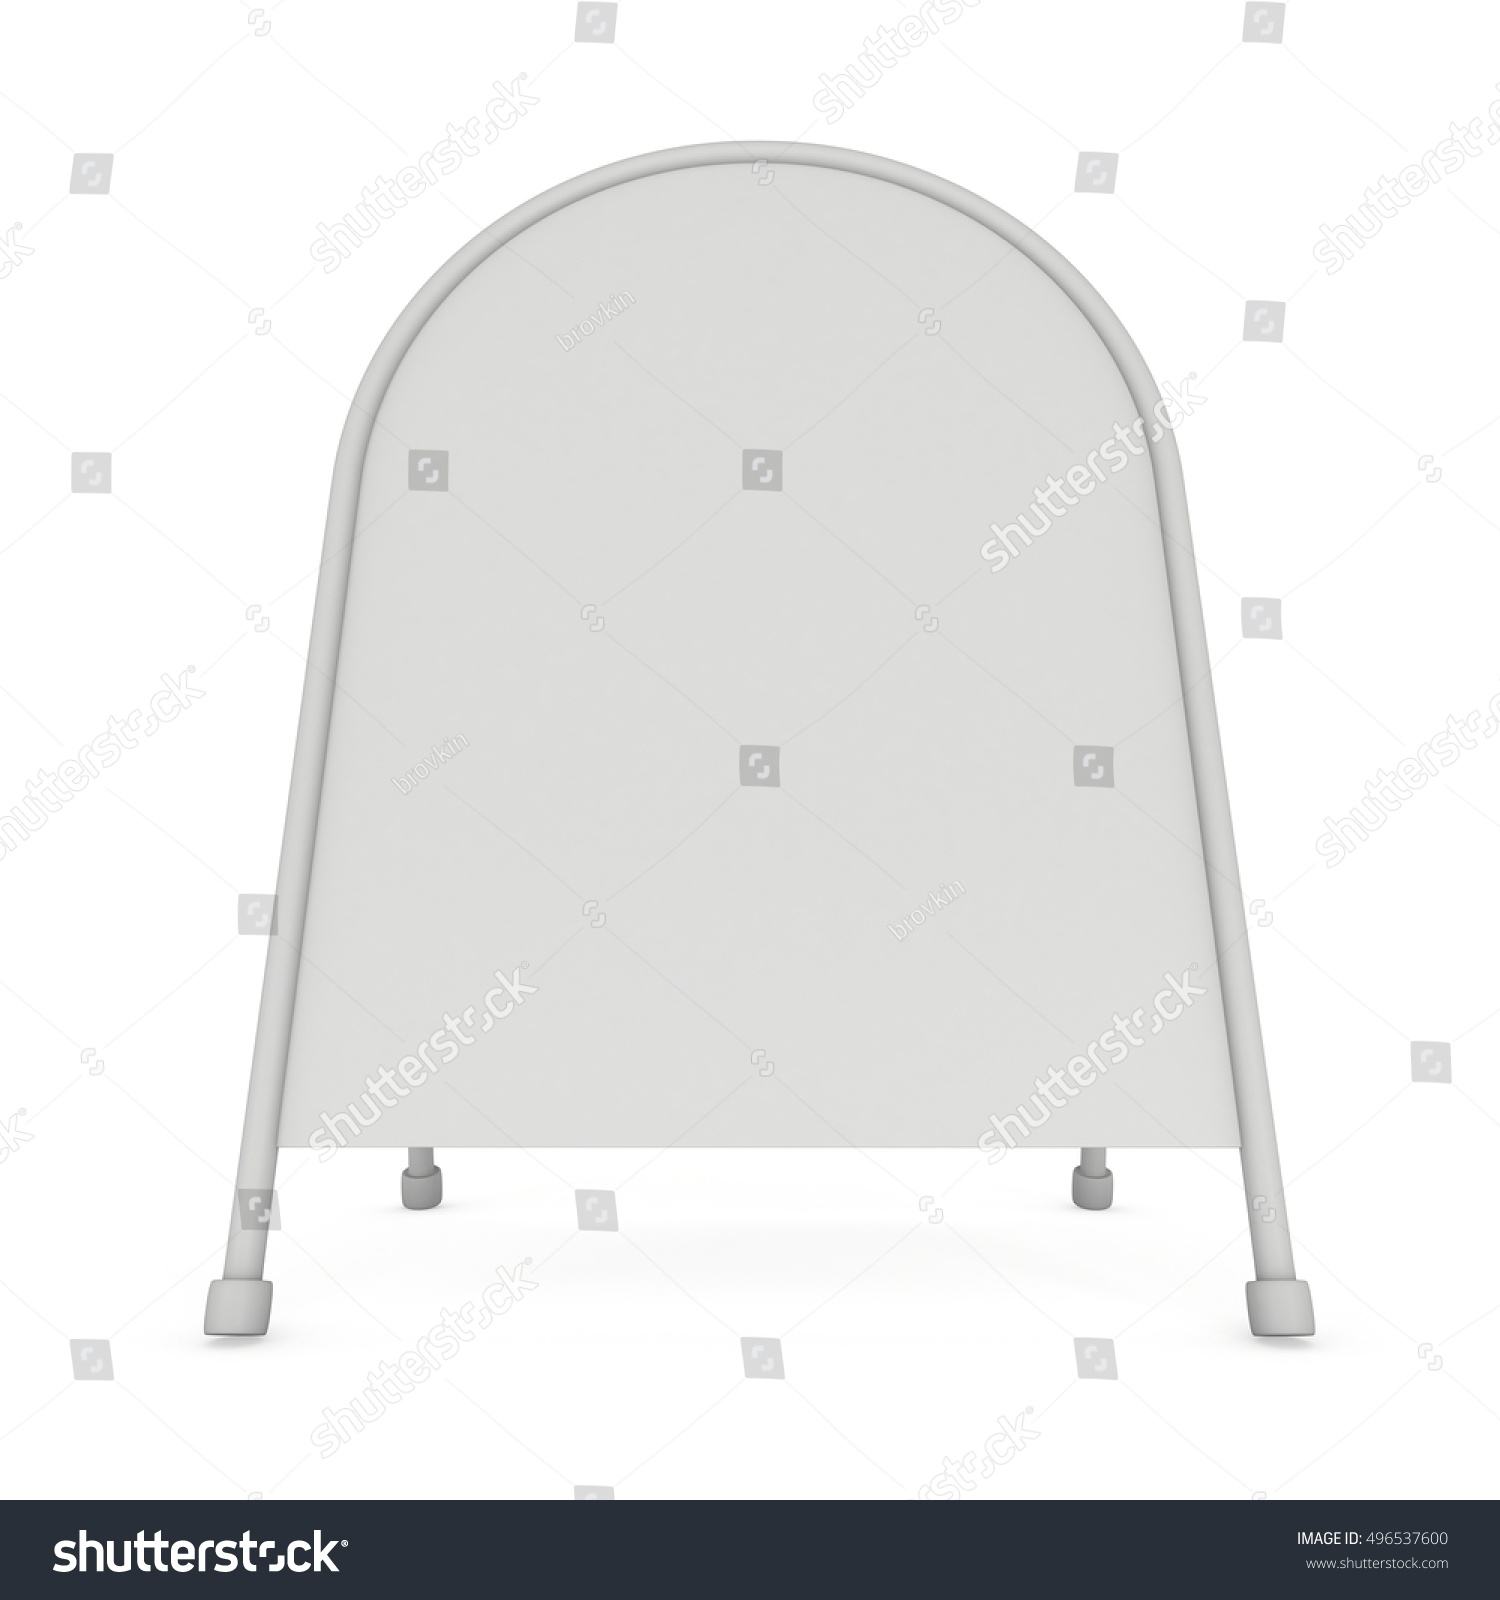 Sandwich board. Blank menu outdoor display with clipping path. Trade ...